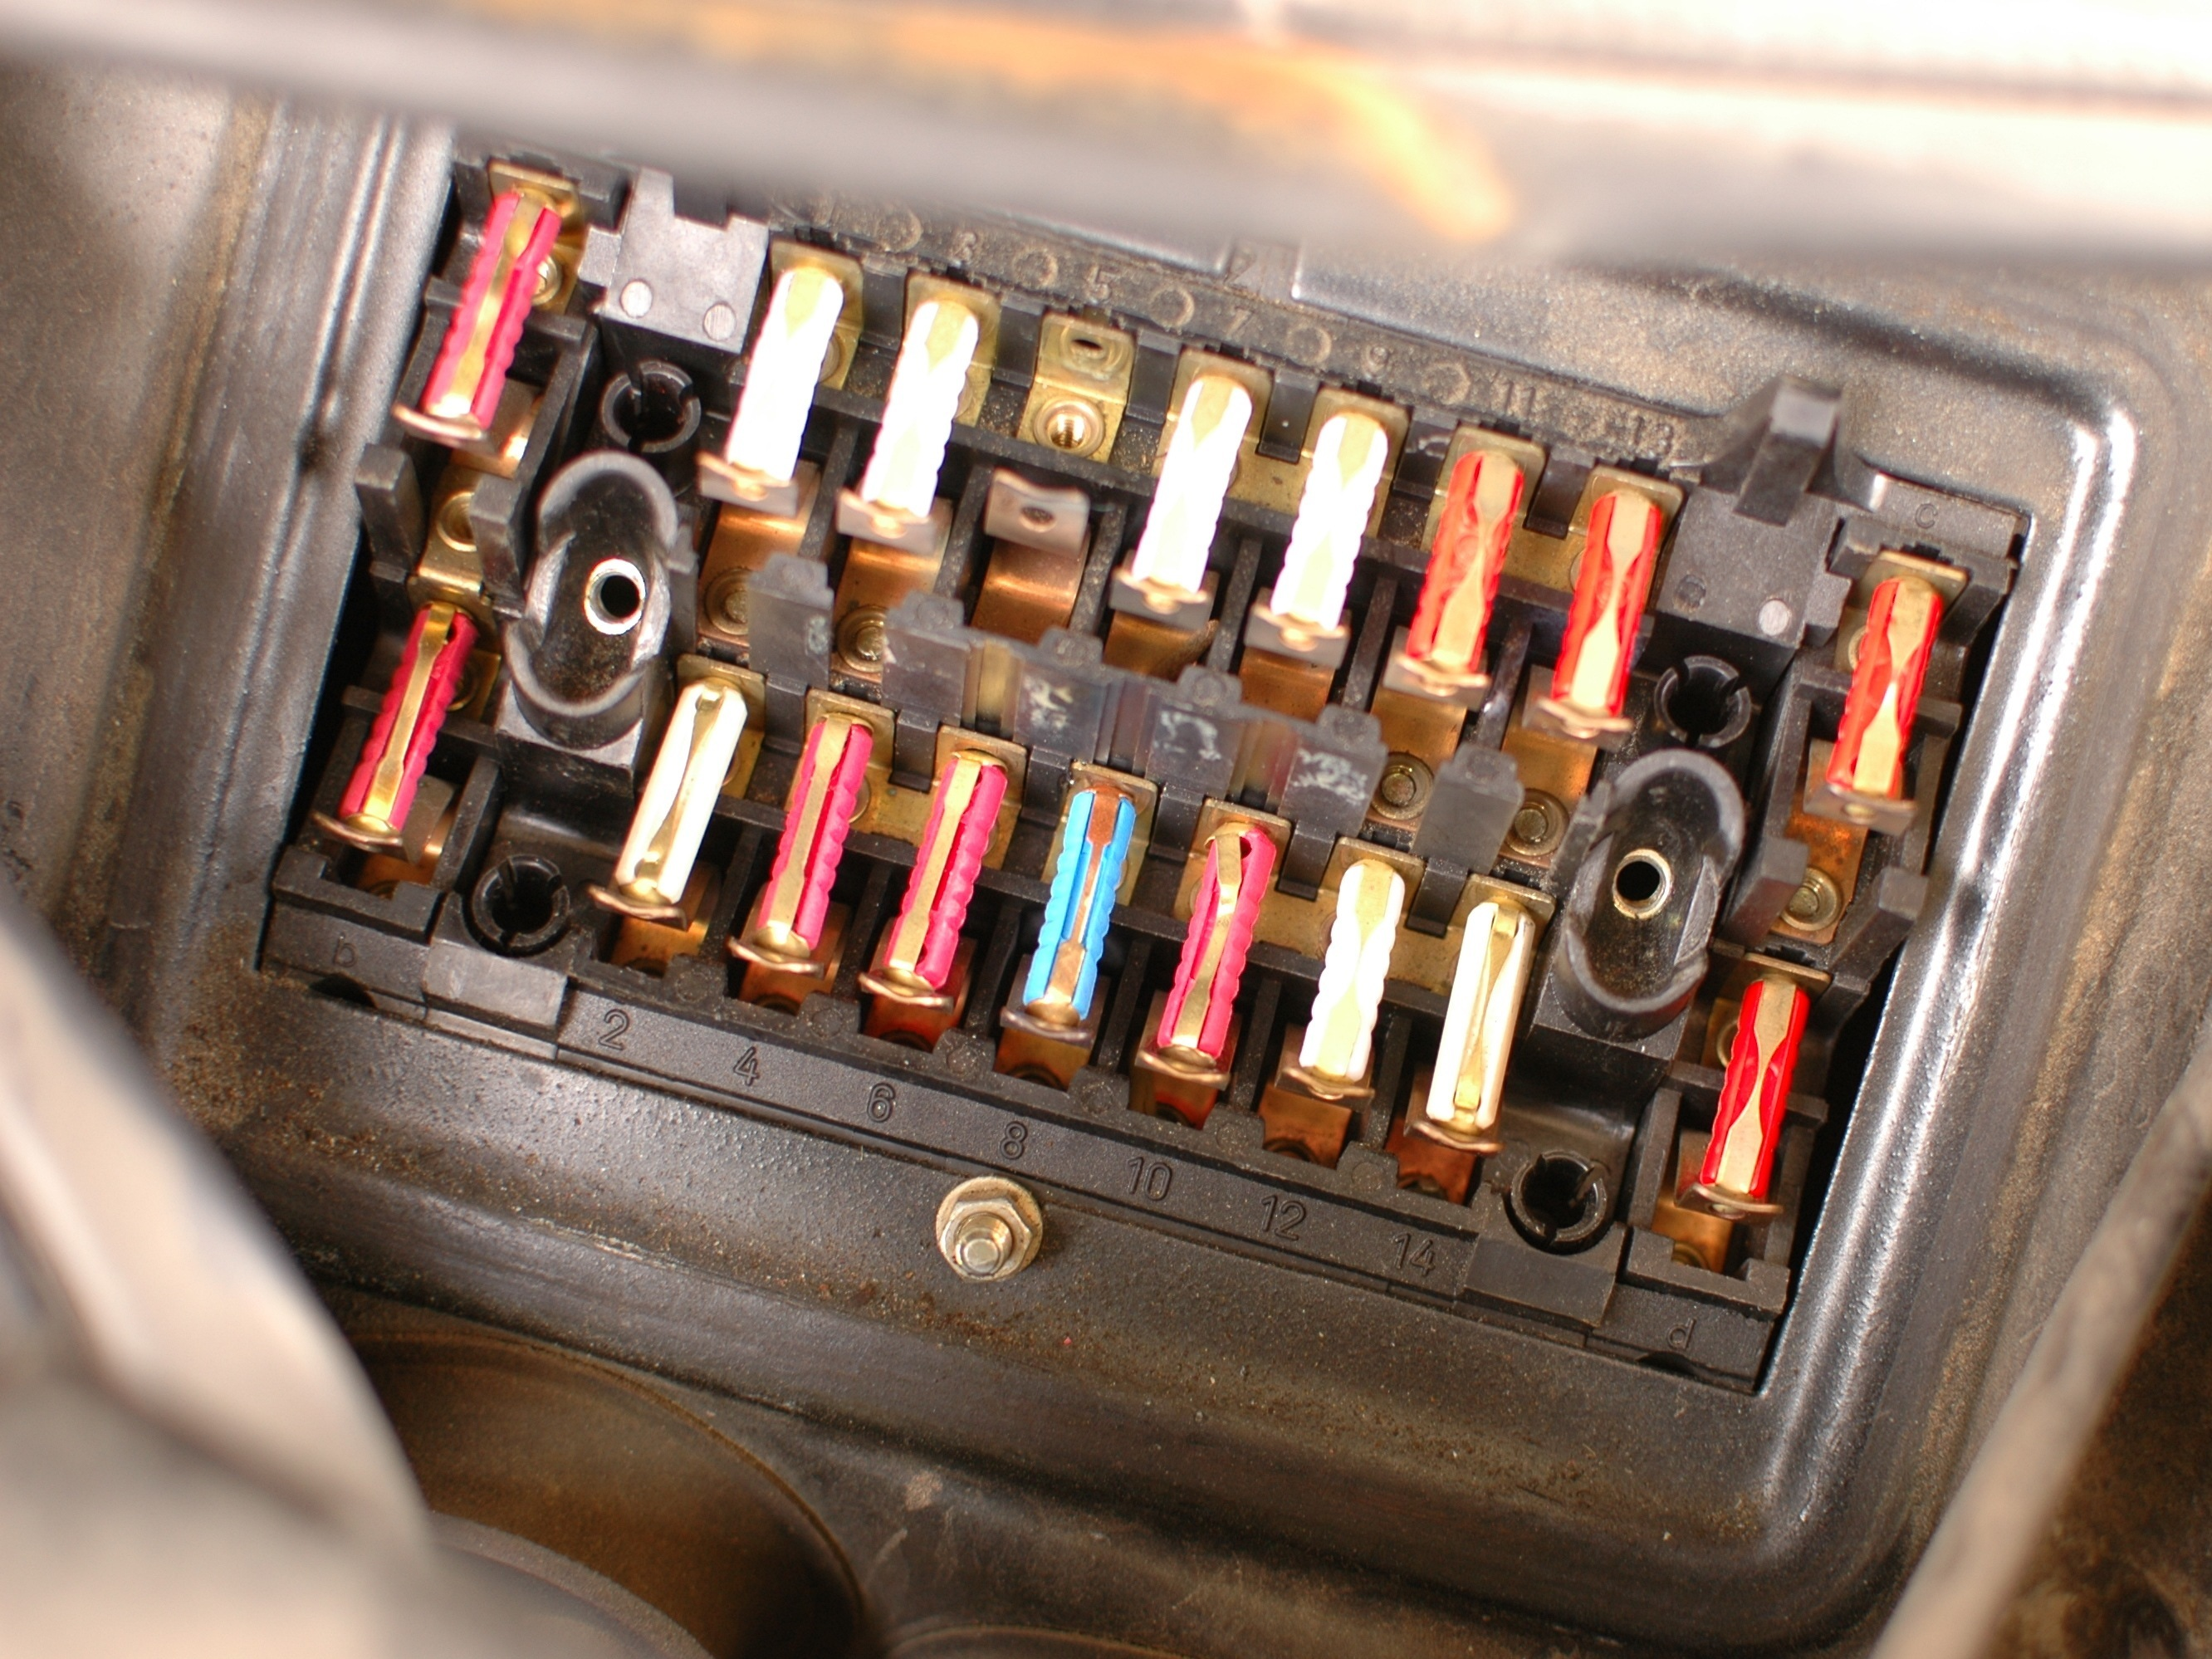 AfYAfmoCaMTVU2ap how to check mercedes w123 fuses ifixit 1978 Mercedes 450SEL at panicattacktreatment.co